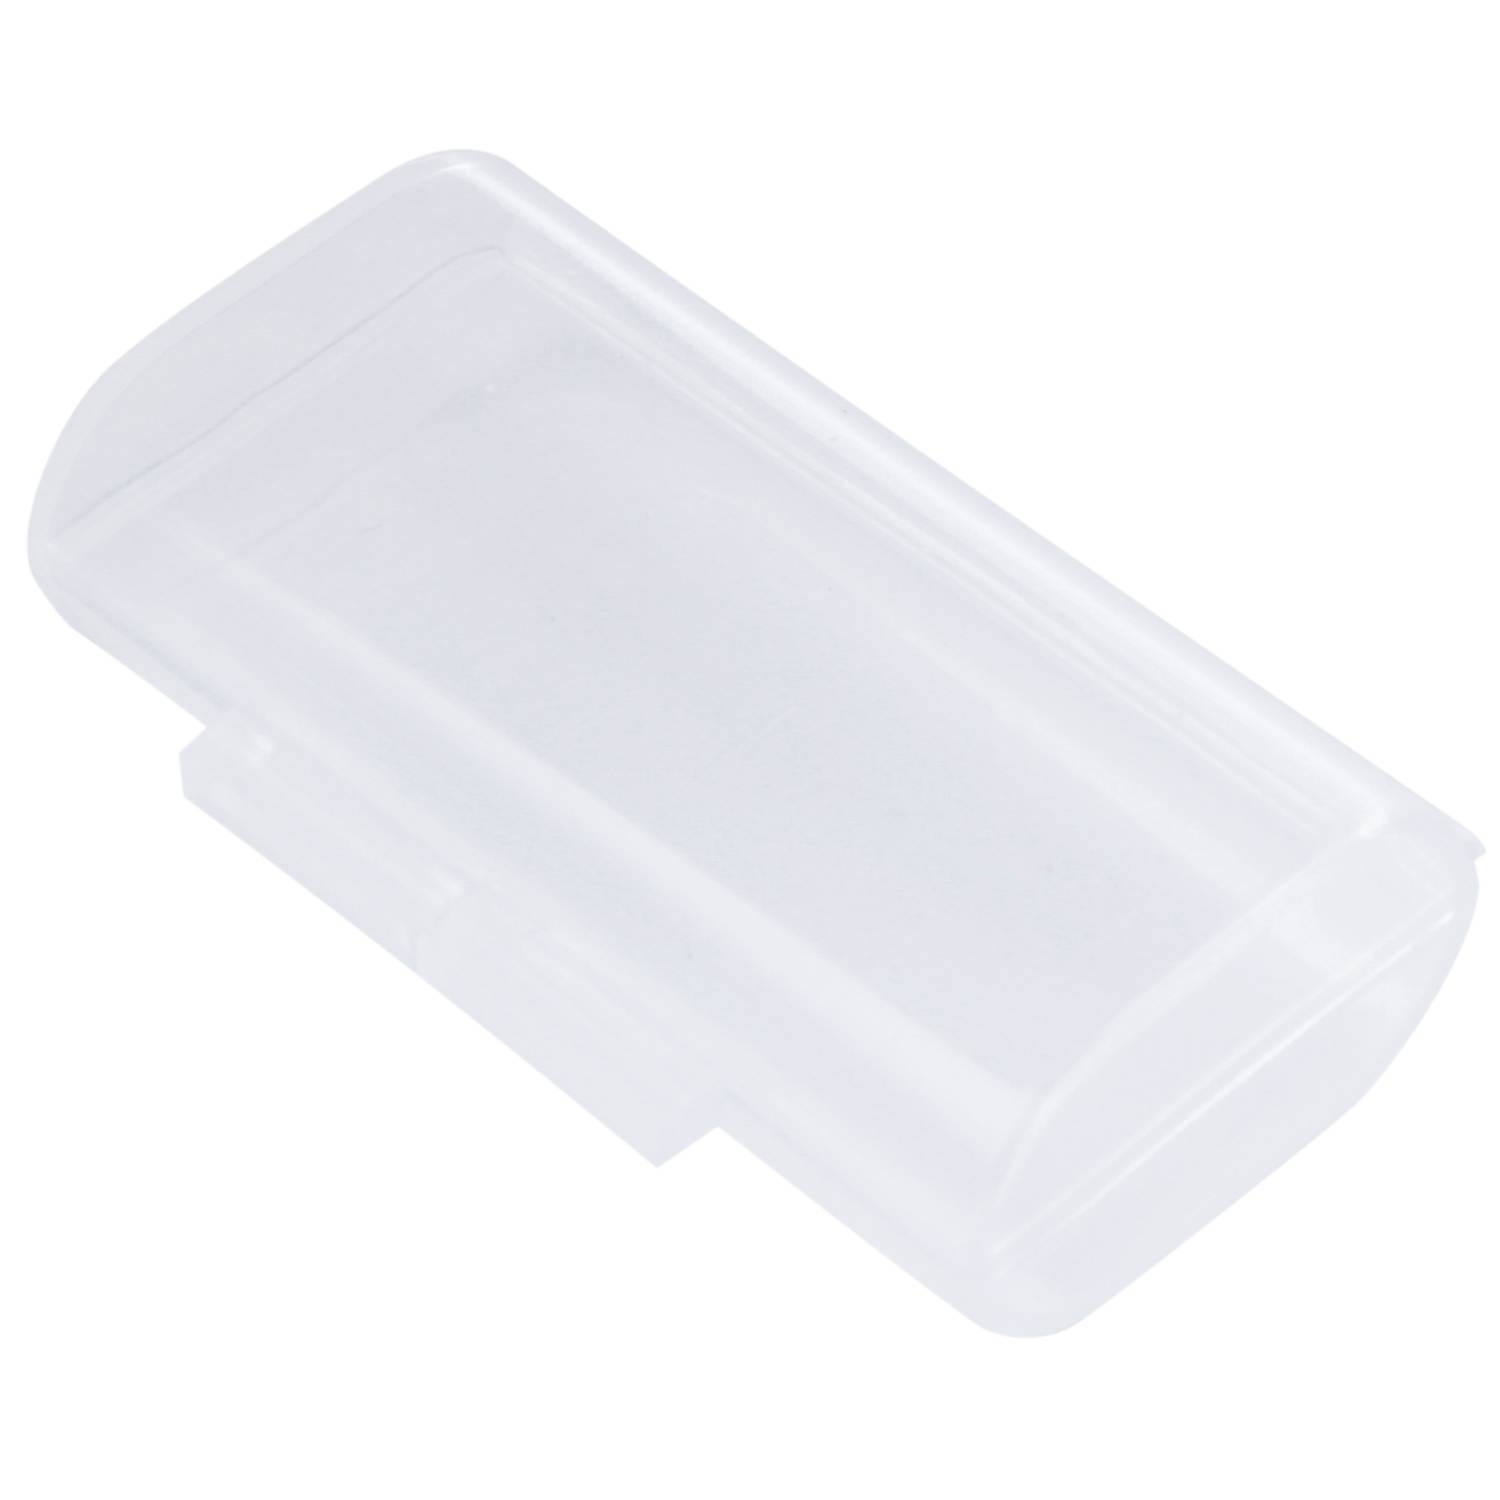 5 Pcs Clear Plastic Storage Box Case Holder For 2 X AAA Batteries